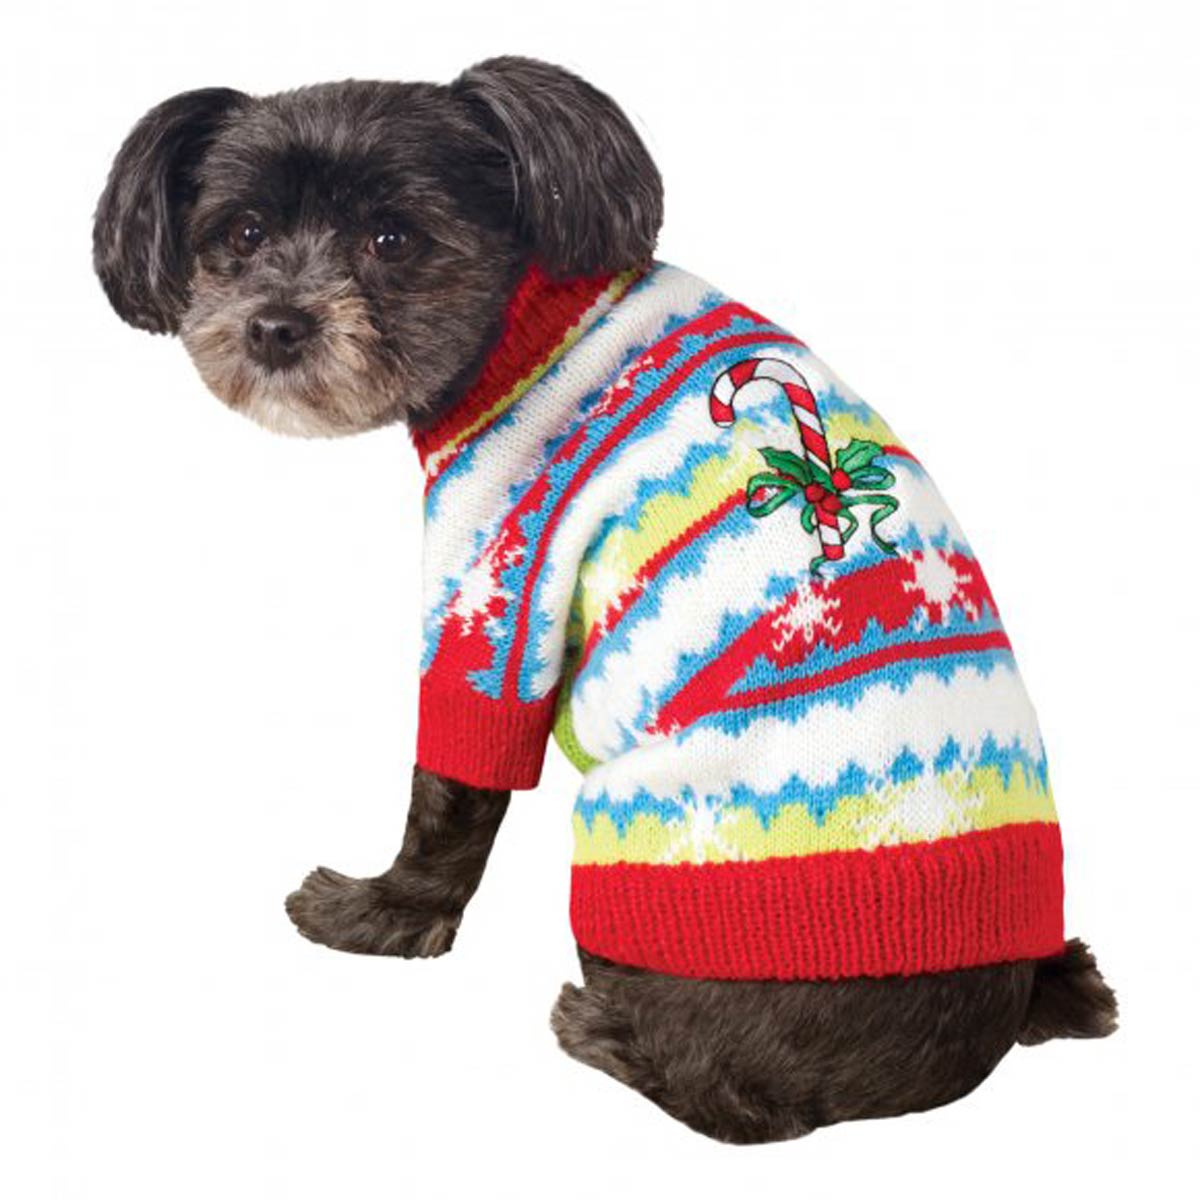 ugly christmas dog sweater cute candy cane - Ugly Christmas Dog Sweater